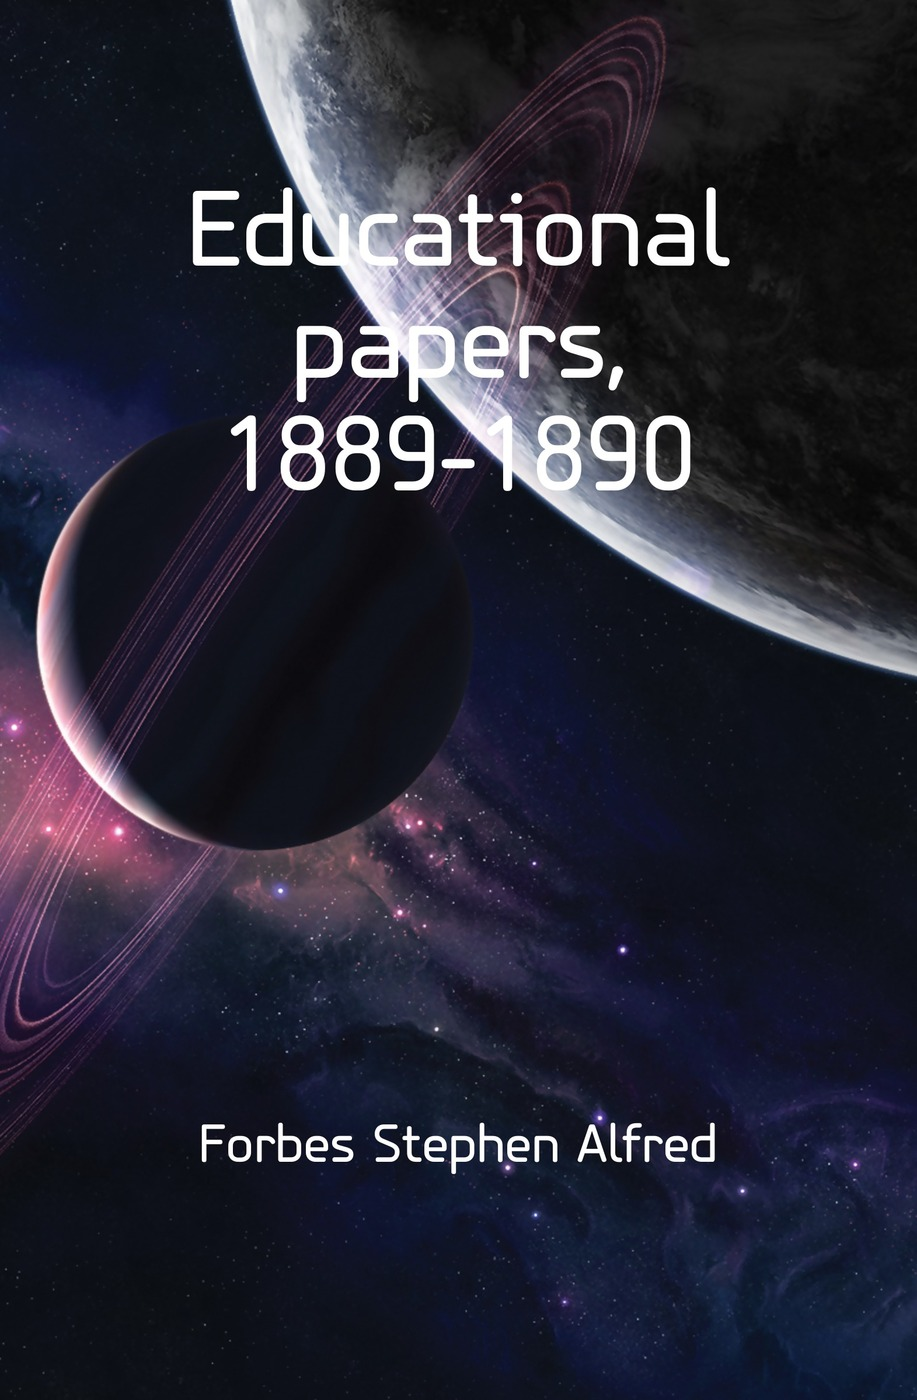 Forbes Stephen Alfred Educational papers, 1889-1890